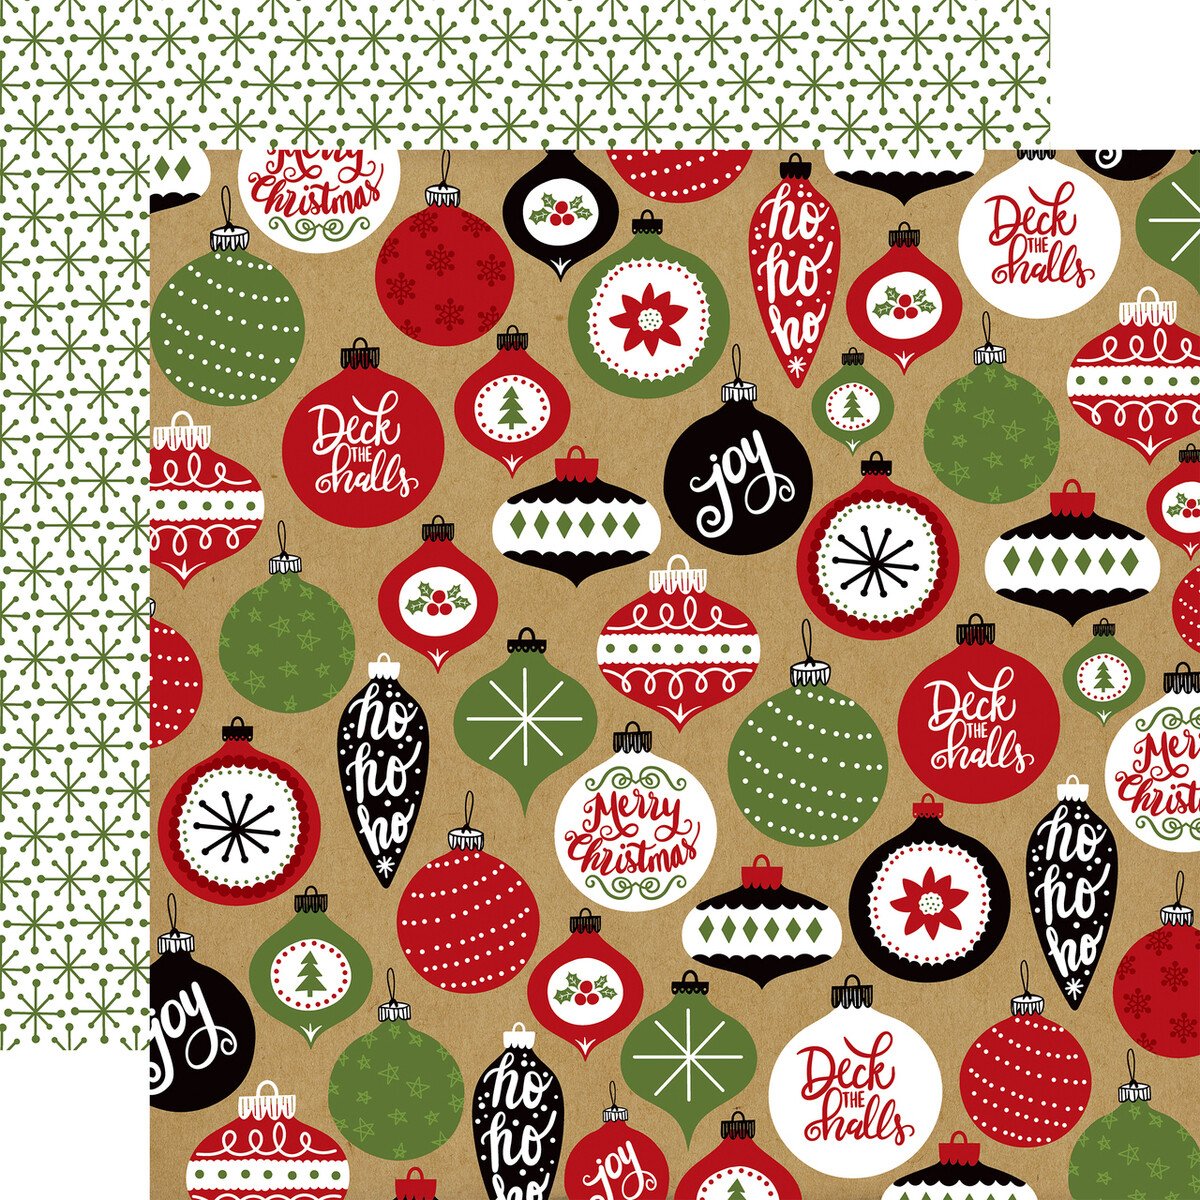 "Echo Park Celebrate Christmas Collection - DECK THE HALLS 12"" x 12"" sheet"